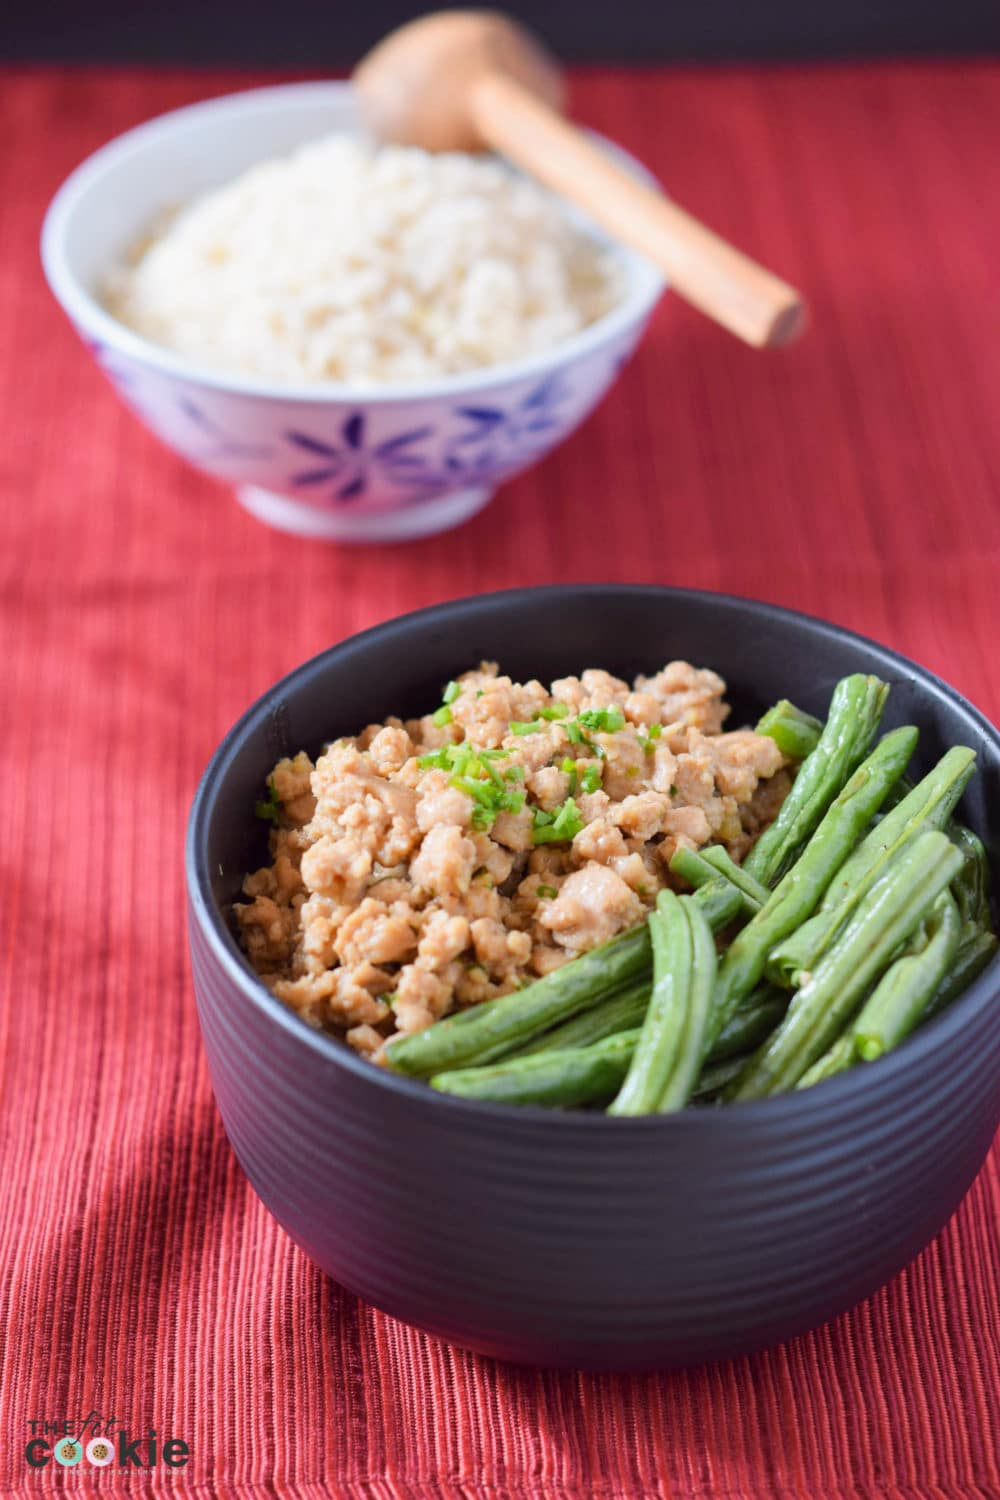 Quick and easy weeknight meal: Ginger Chicken & Rice Bowl (Gluten and Soy Free) - @TheFitCookie #recipe #glutenfree #soyfree #fitfluential